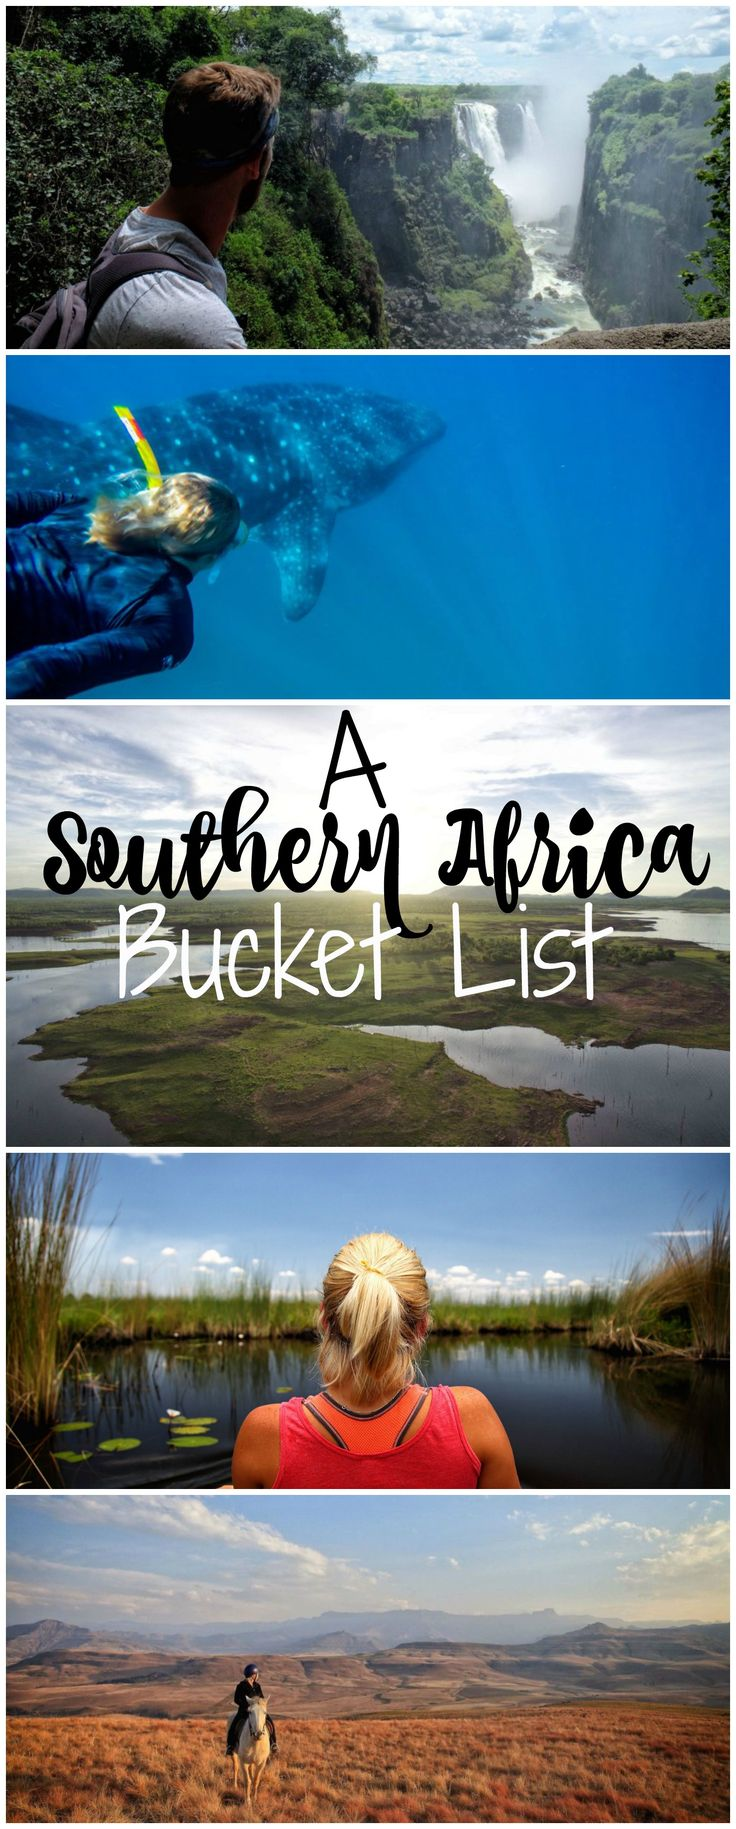 The ultimate Southern Africa bucket list to read before traveling to Africa.